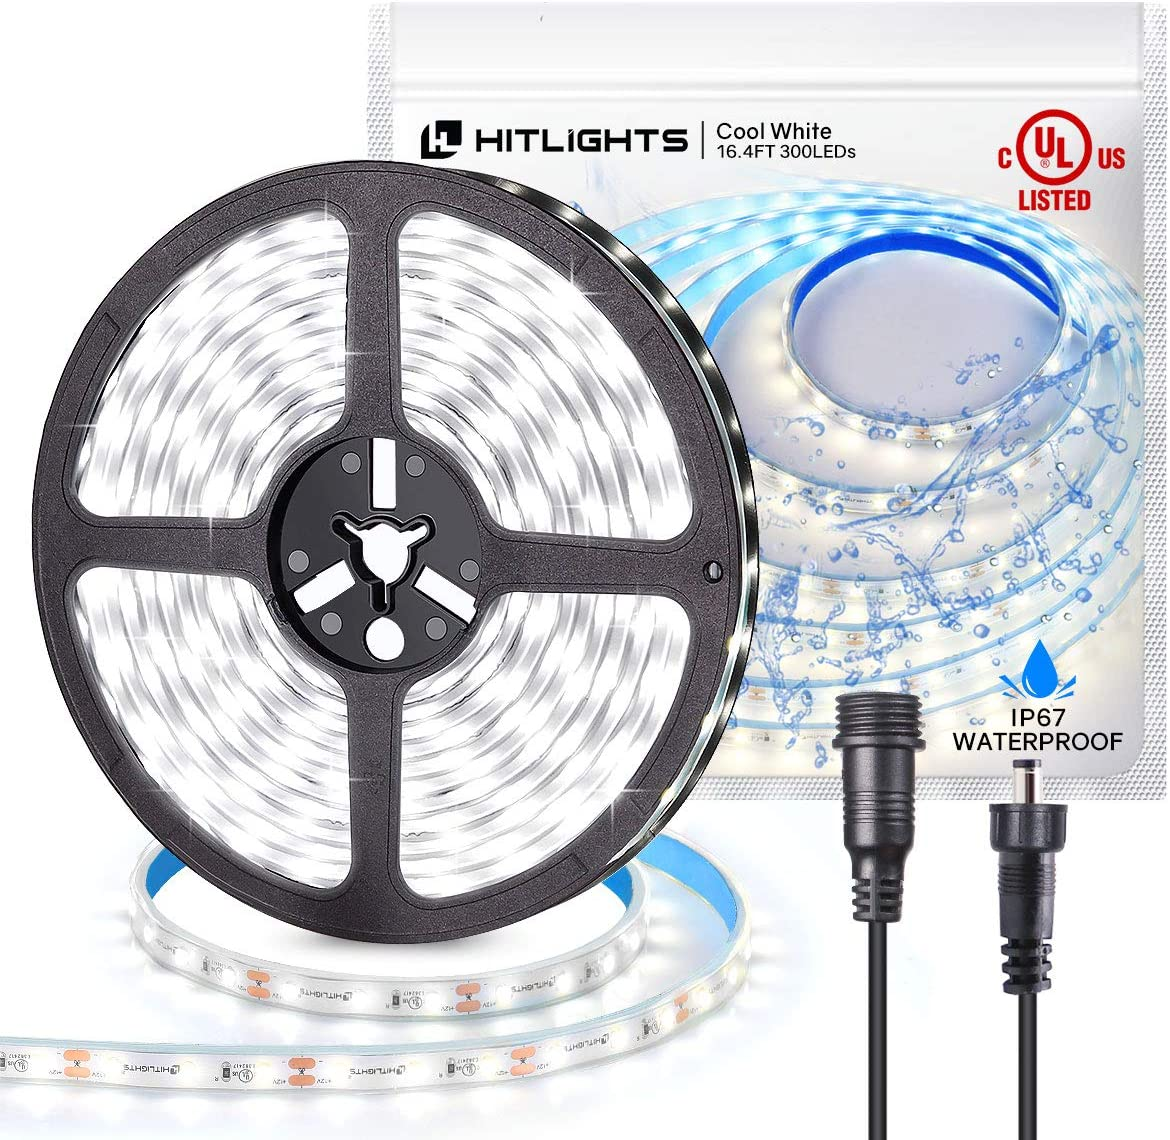 Amazon Com Hitlights Led Strip Lights Waterproof Cool White 16 4ft 300leds 5000k Led Tape Light 23 5w 12v 2835 Ul Listed Dimmable Led Strips For Home Outdoor Under Cabinet Decorations Home Improvement